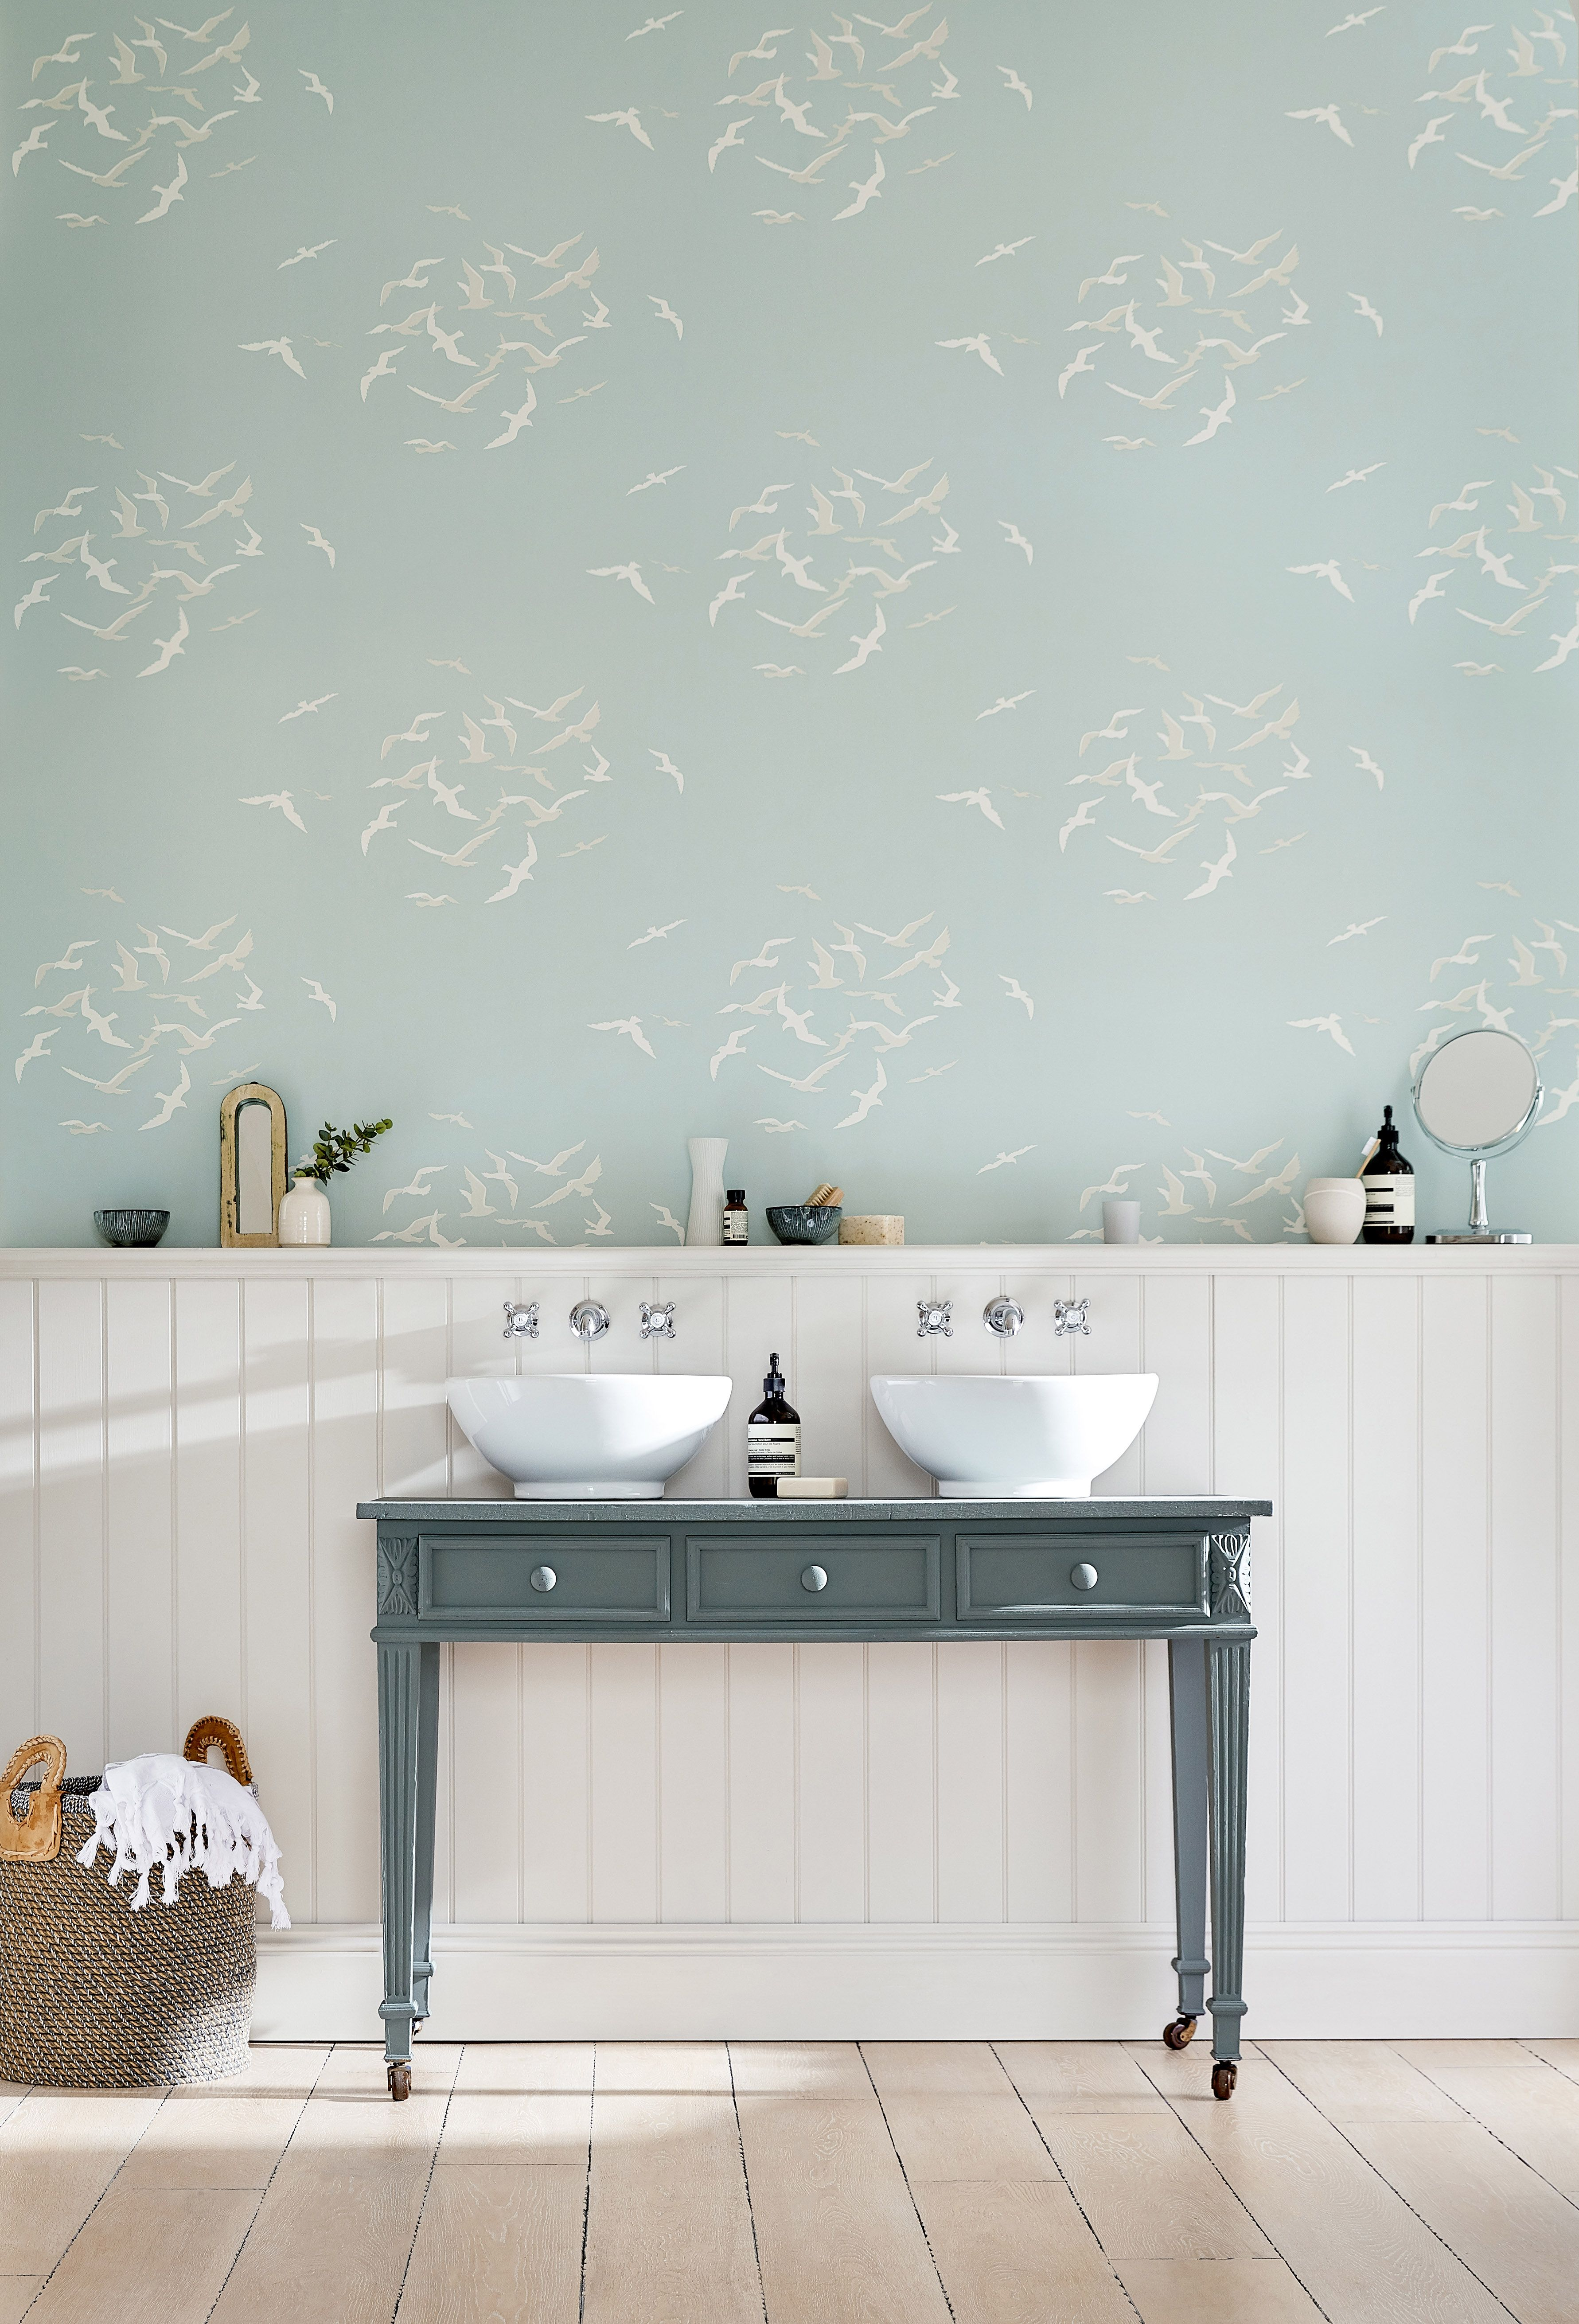 Pin By Sanderson On Port Isaac Coastal Wallpaper Home